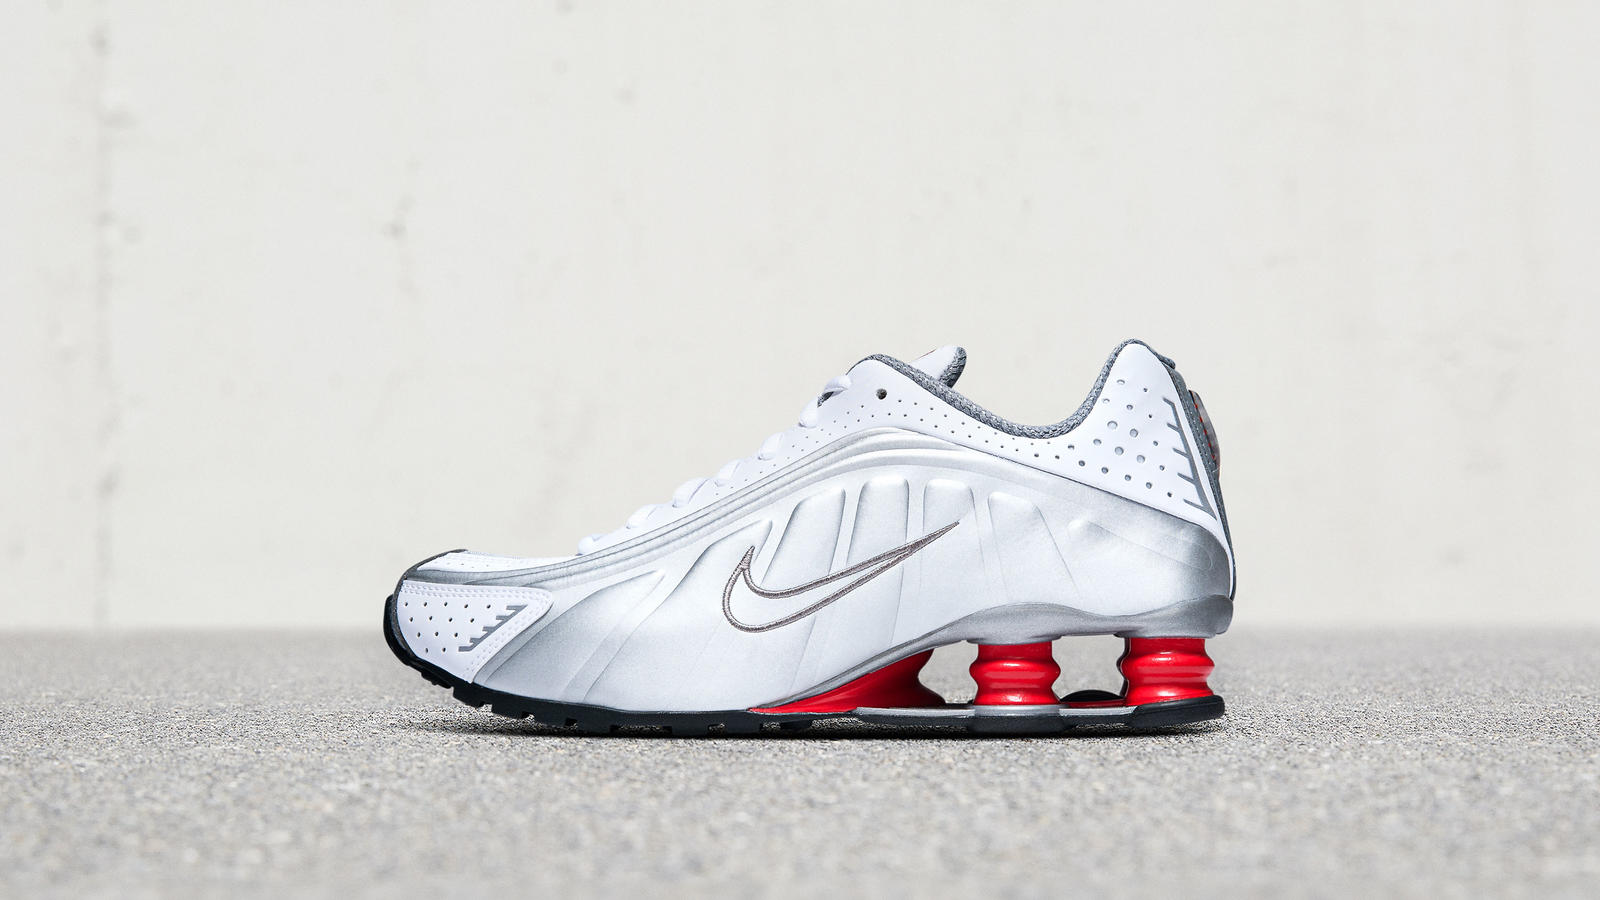 601762f591b1d4 How to Get the Nike Shox R4 - Nike News